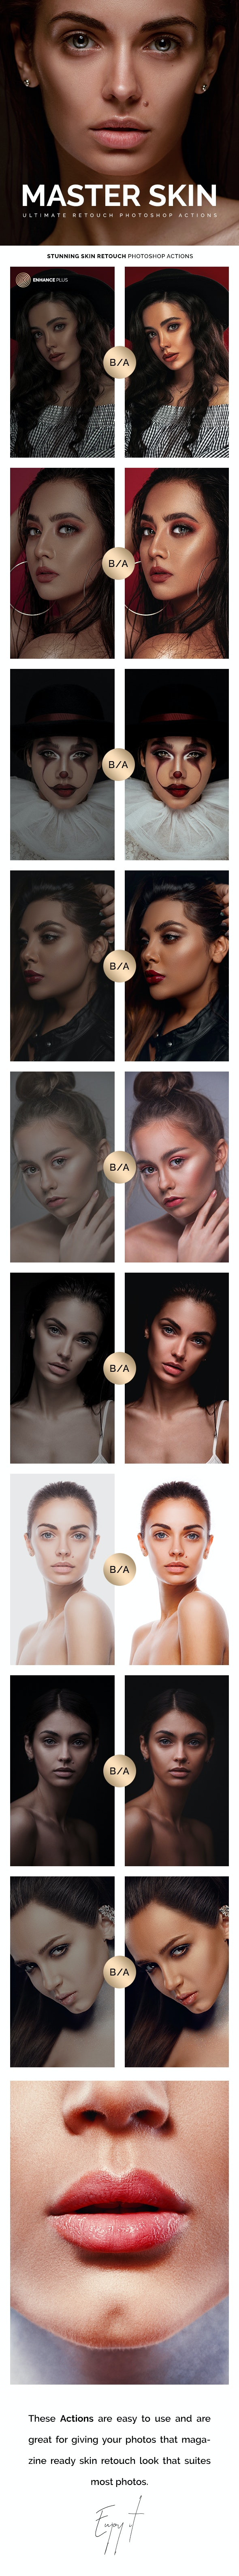 Master Skin Retouch 70 Photoshop Actions - Photo Effects Actions